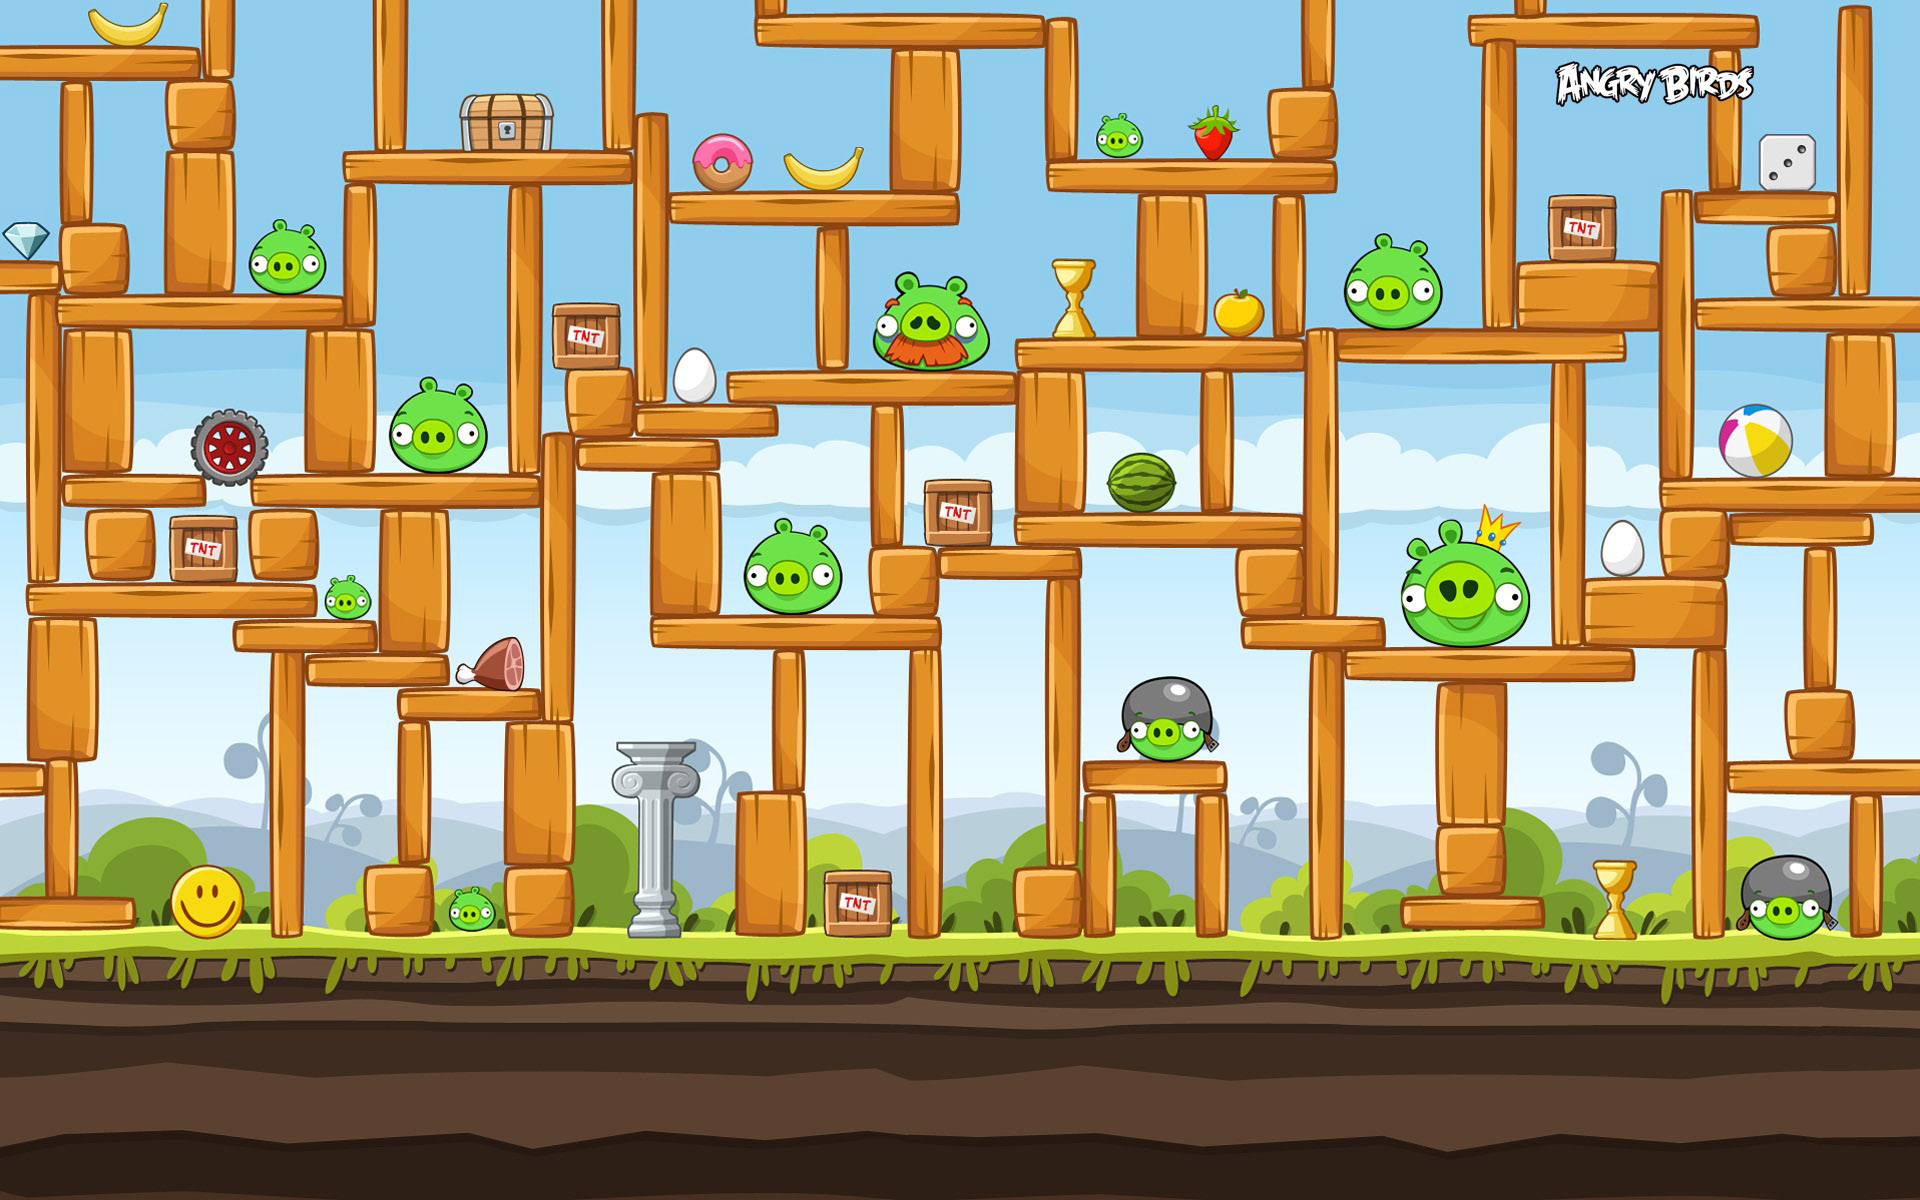 angry birds wallpaper 47328 1920x1200 px ~ hdwallsource